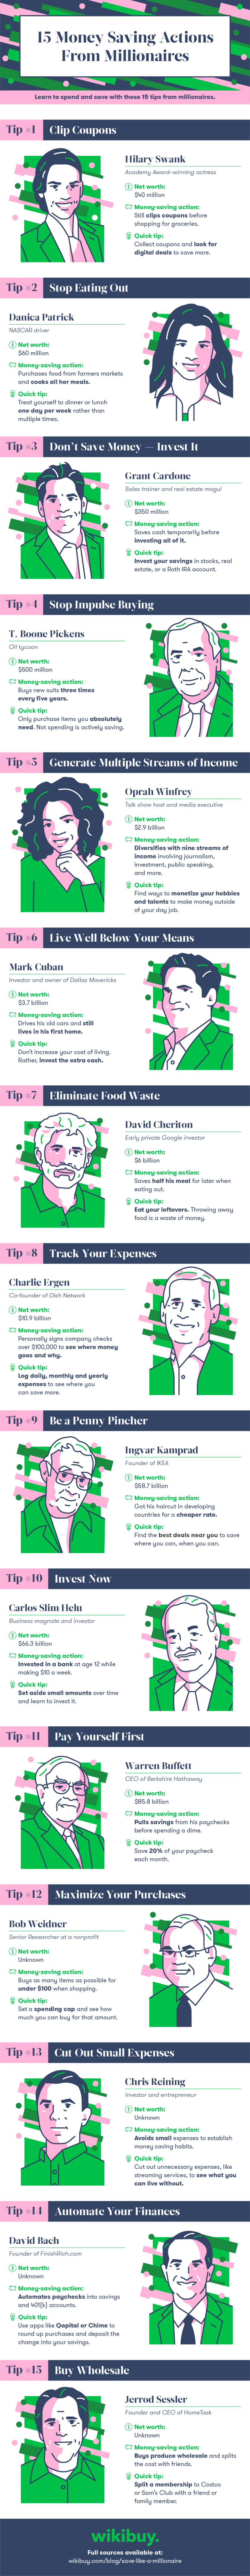 How to Save Money Like a Millionaire [Infographic]